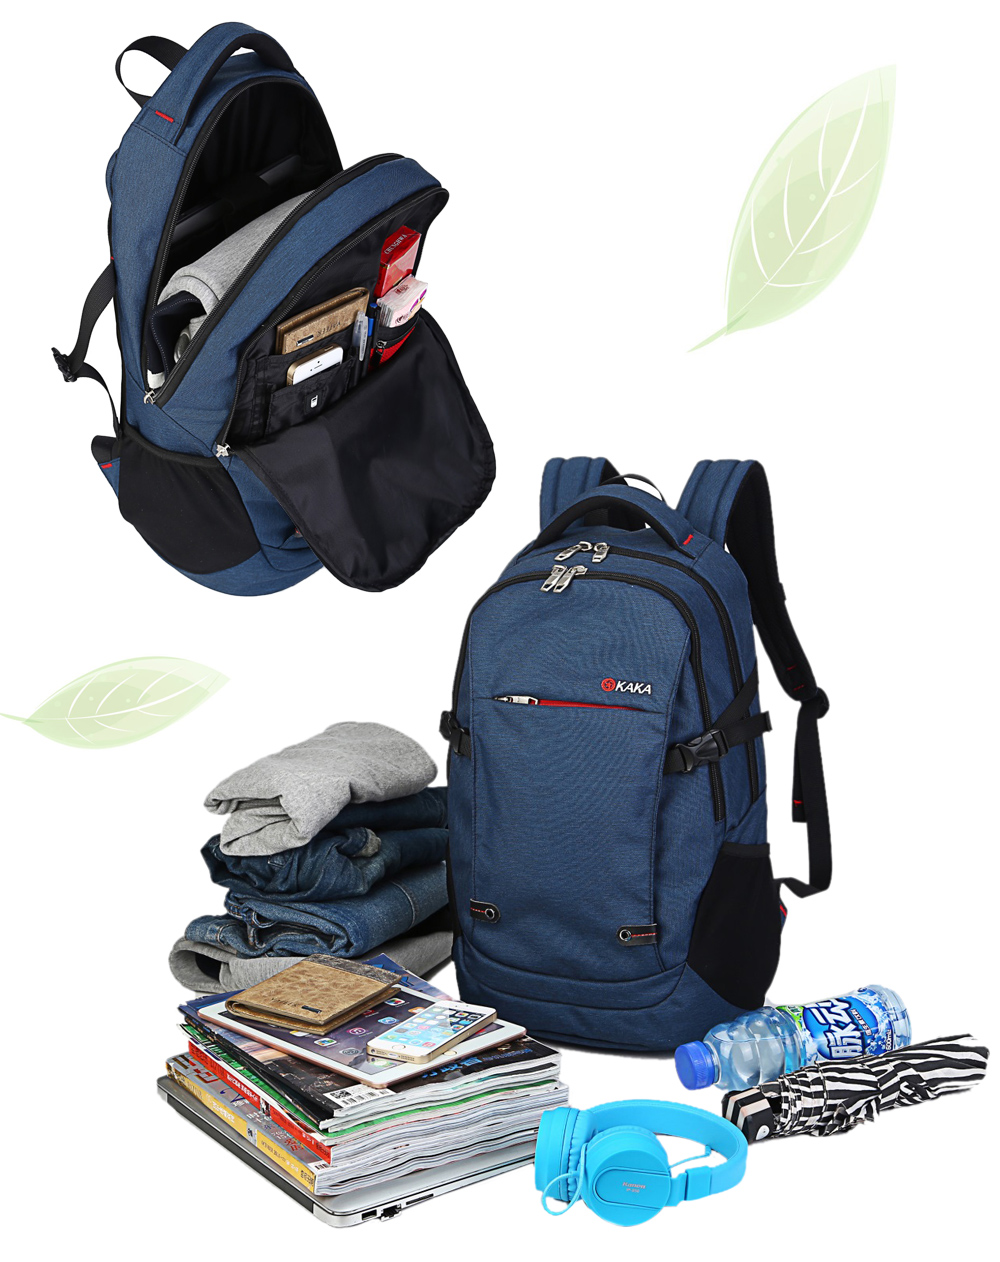 Kaka 88001 Oxford 25L Leisure Backpack 15 inch Laptop Bag with Nylon Lining